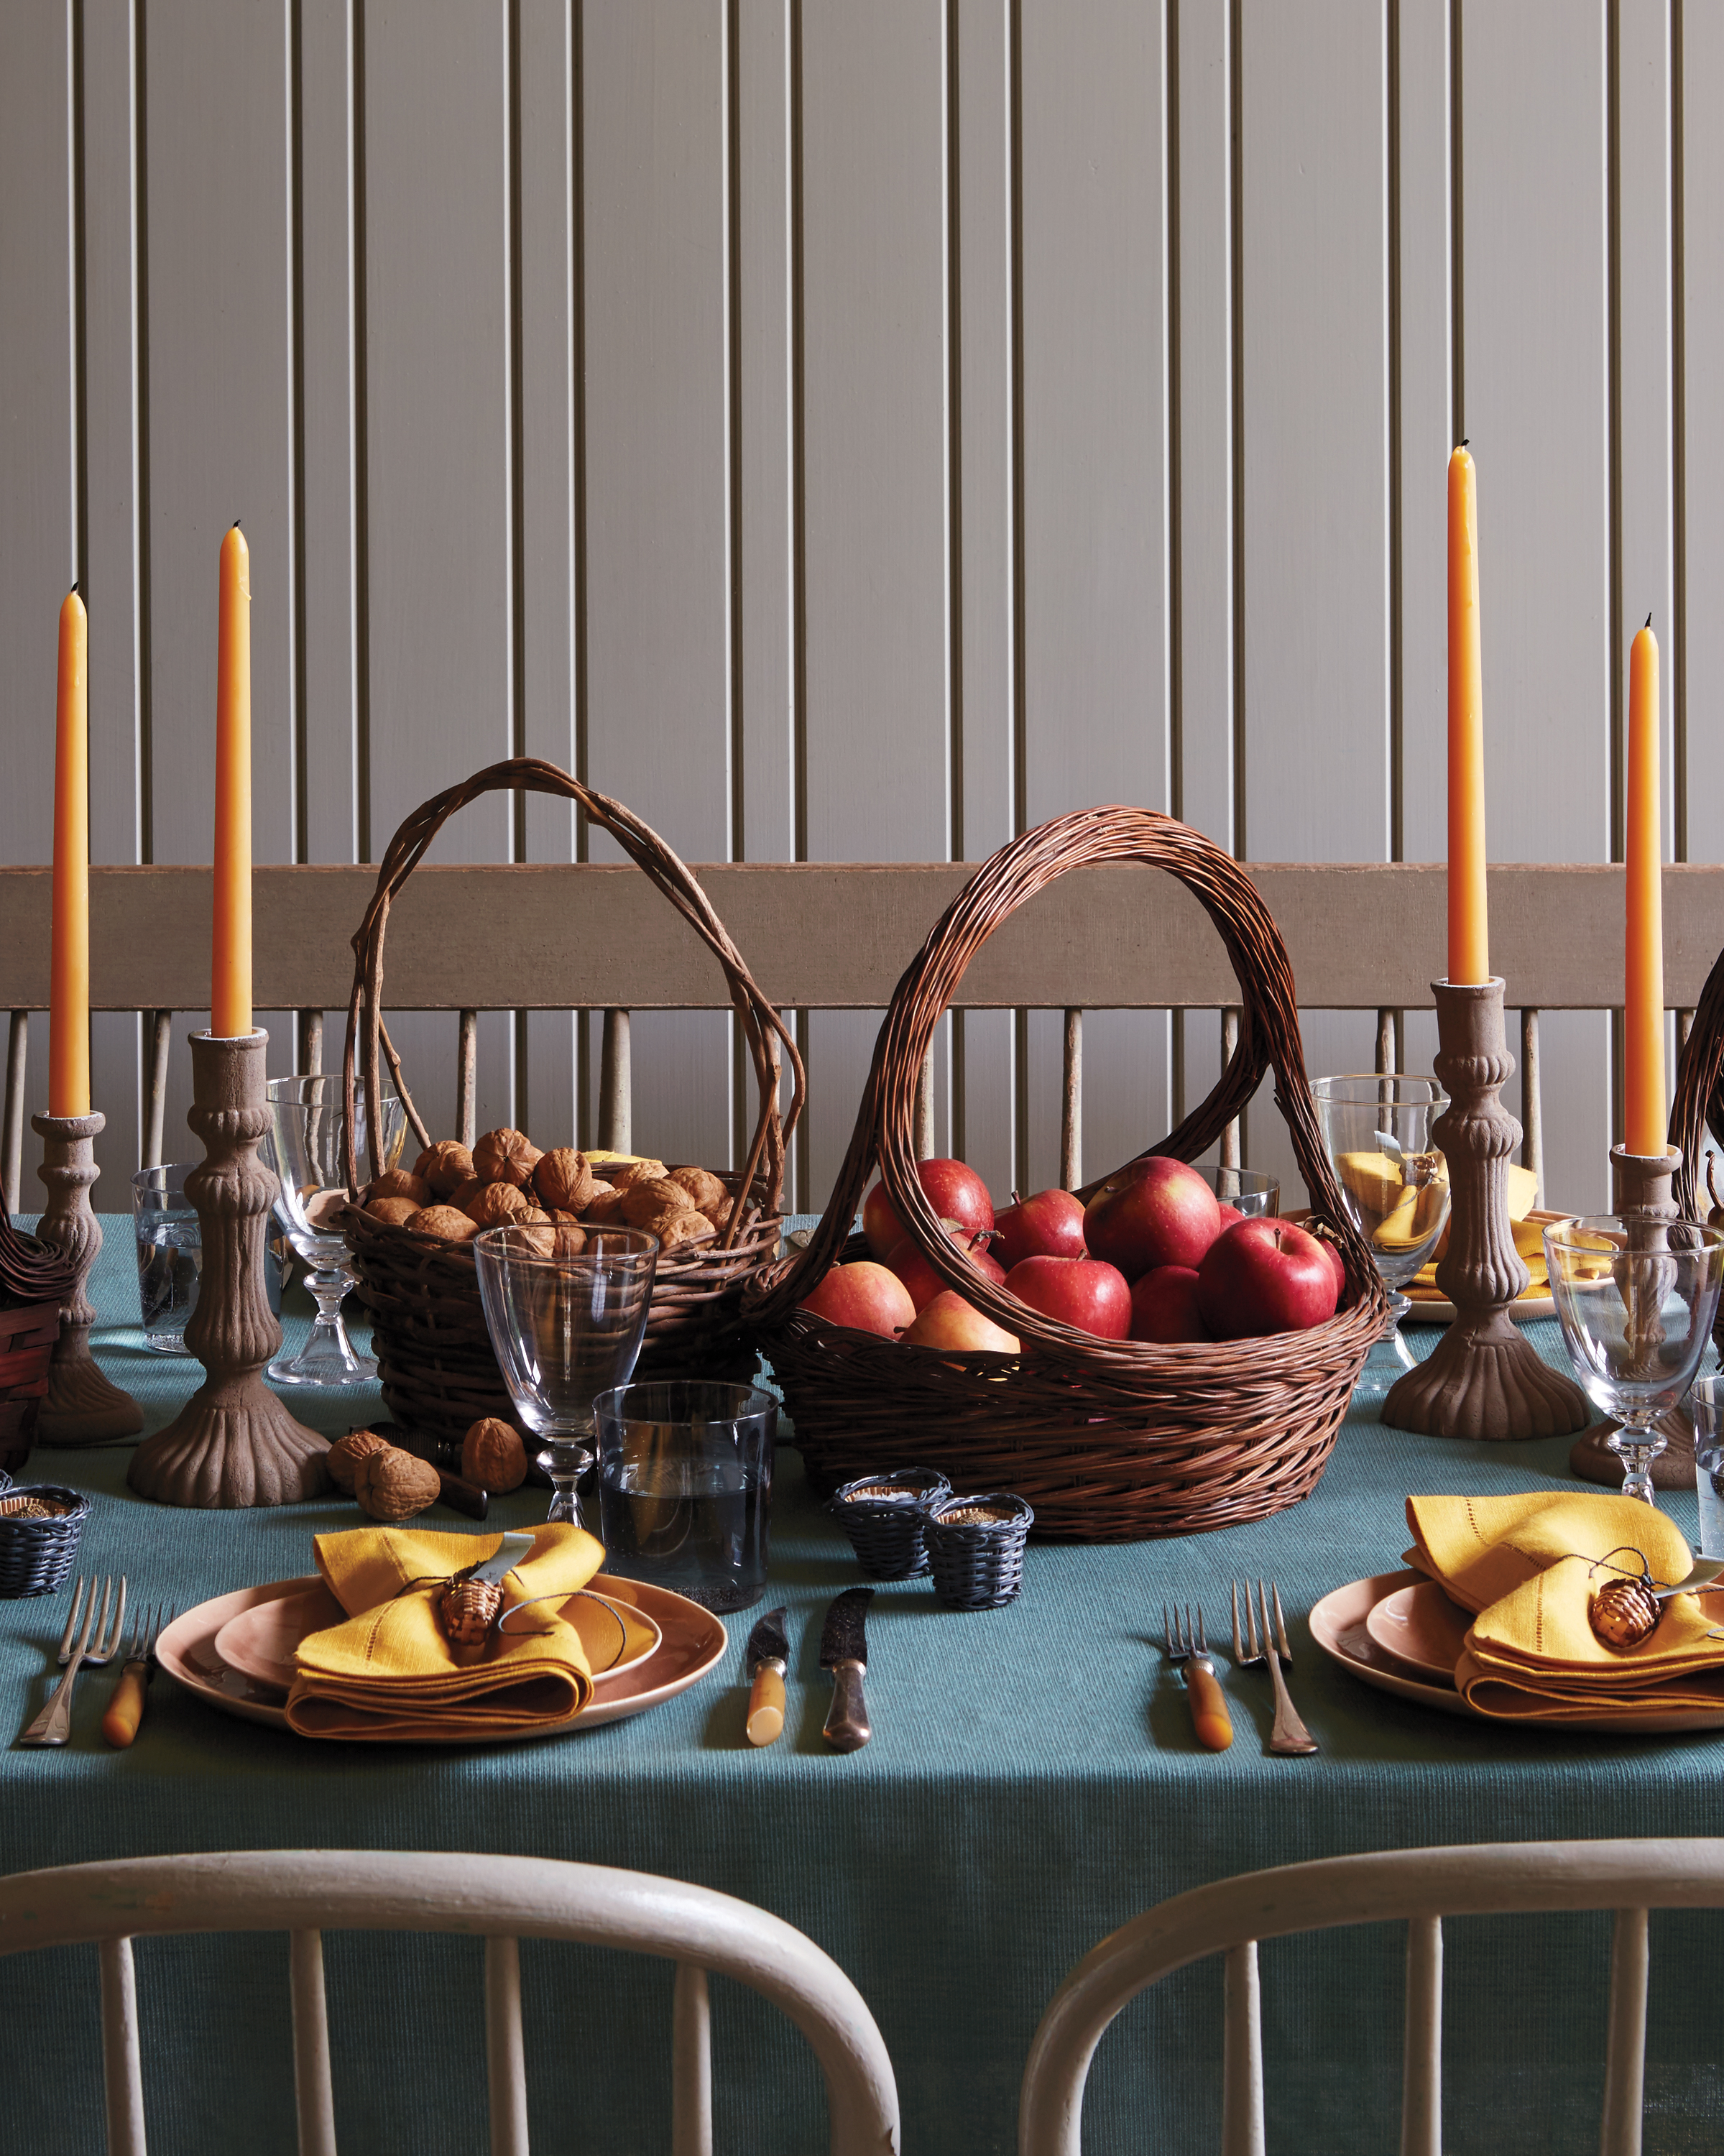 baskets table setting for Thanksgiving